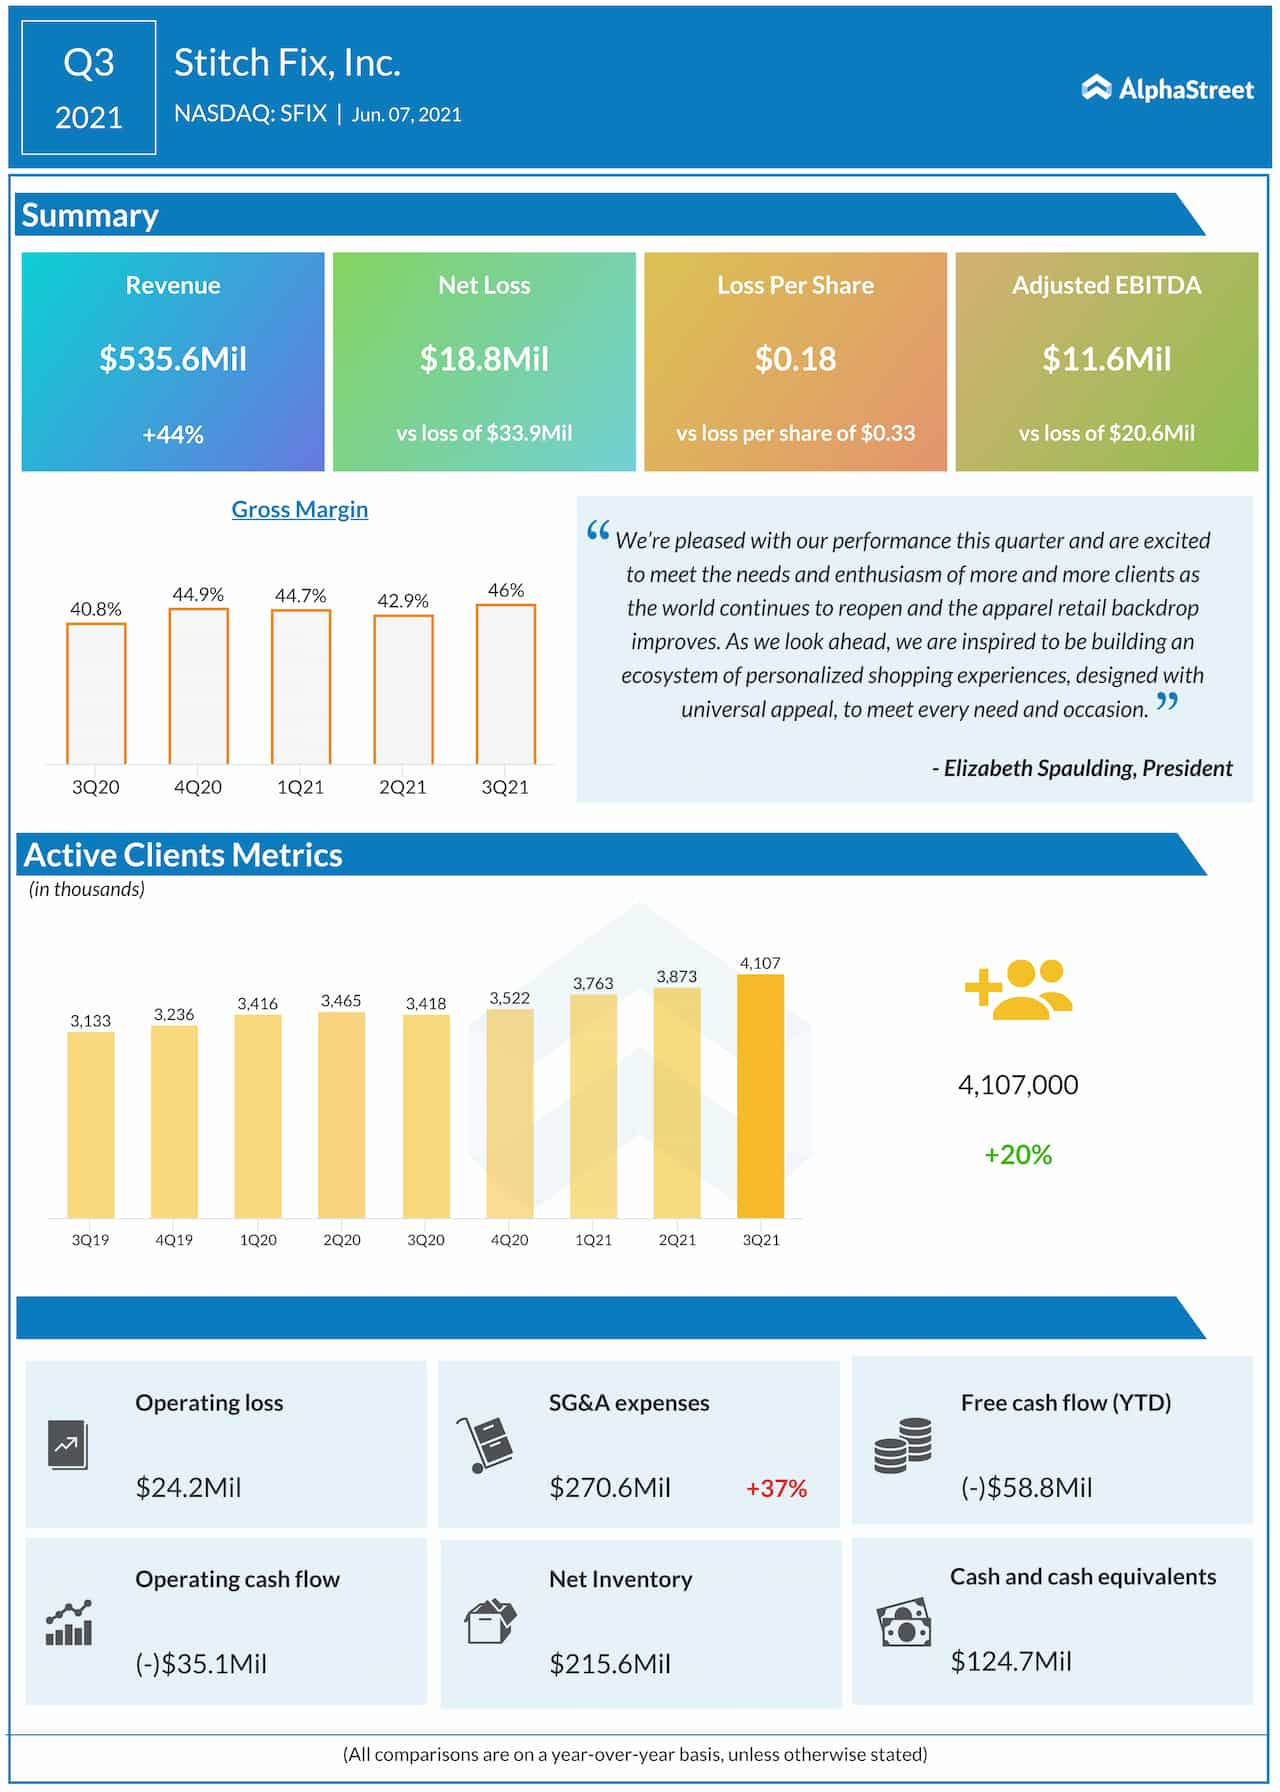 Stitch Fix Q3 2021 earnings infographic